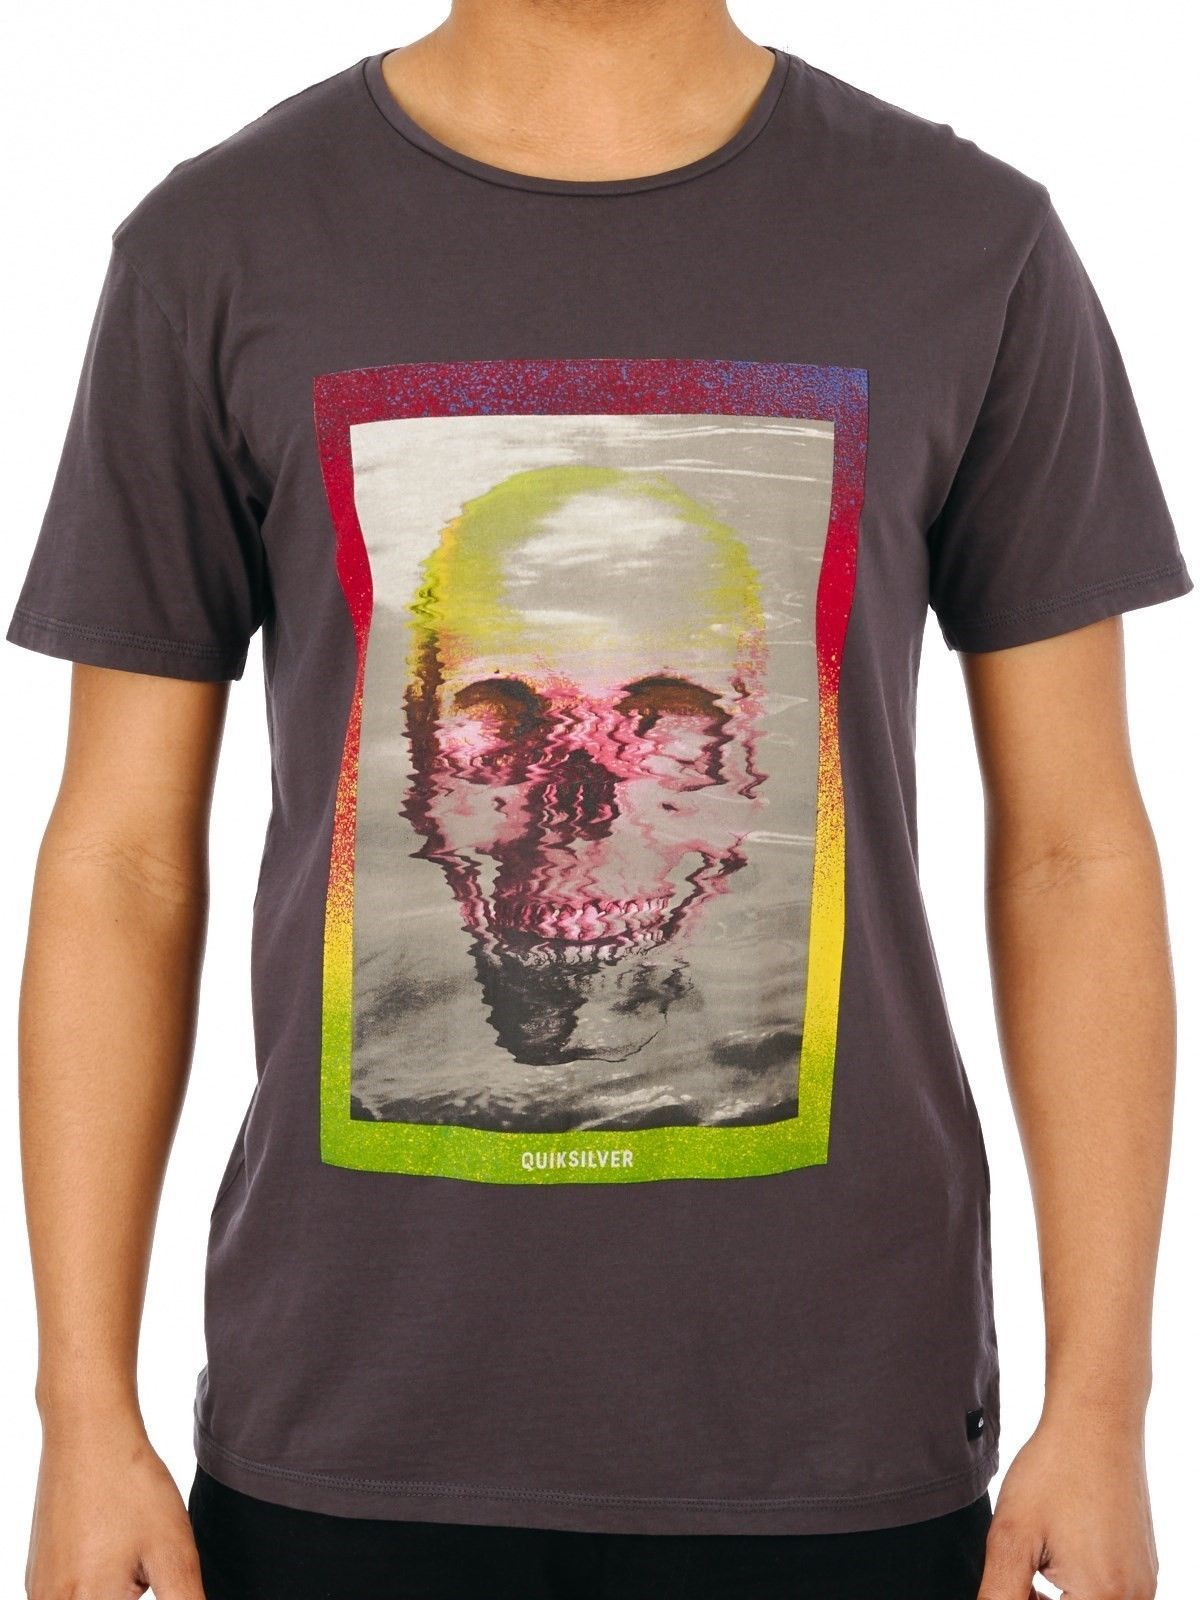 Large Quiksilver Men's Tee Shirt Surfing Beach Casual Skully Acid Tarmac T-Shirt